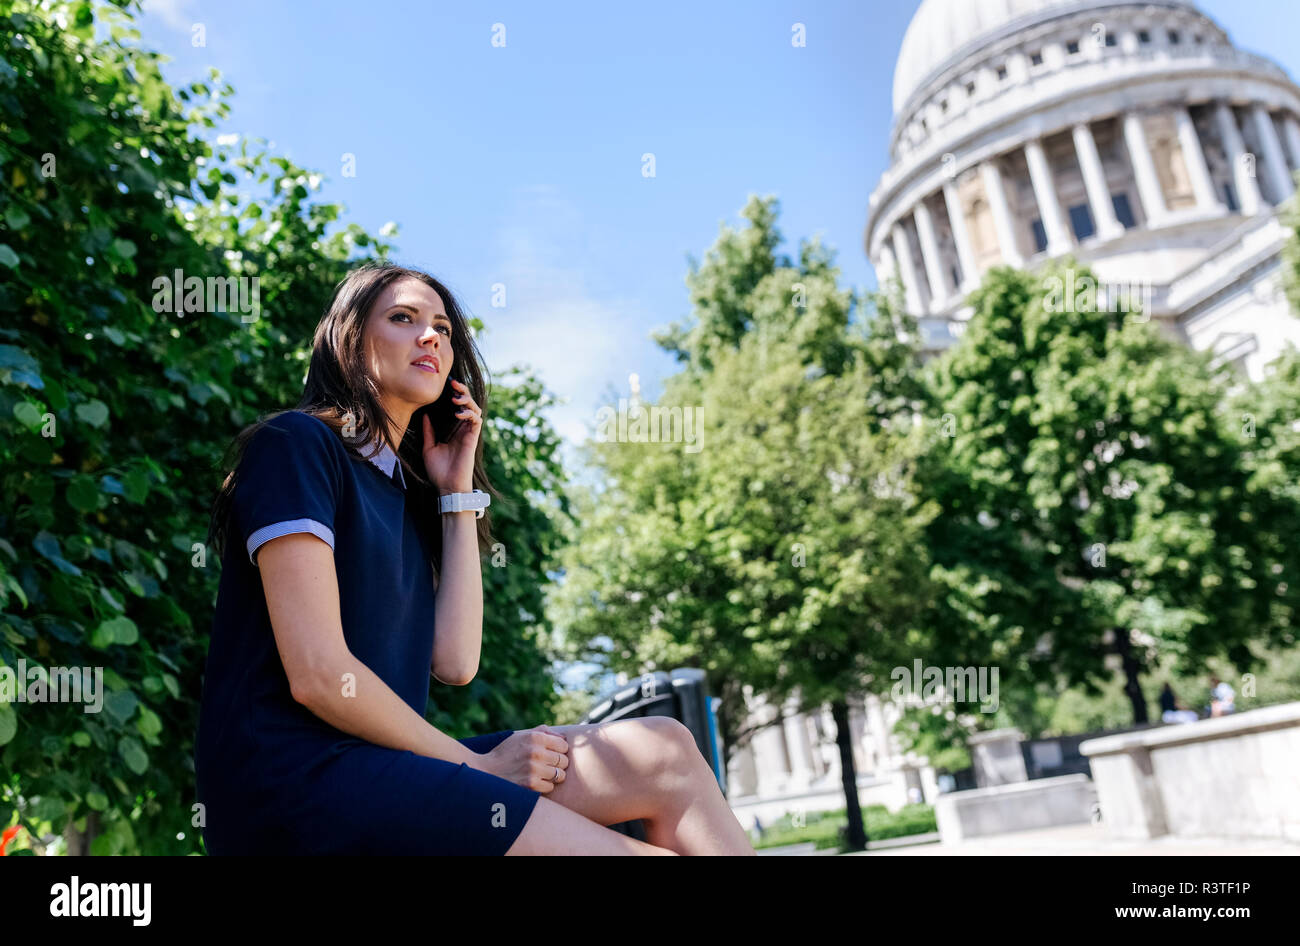 UK, London, young woman talking on the phone near St. Paul's Cathedral - Stock Image